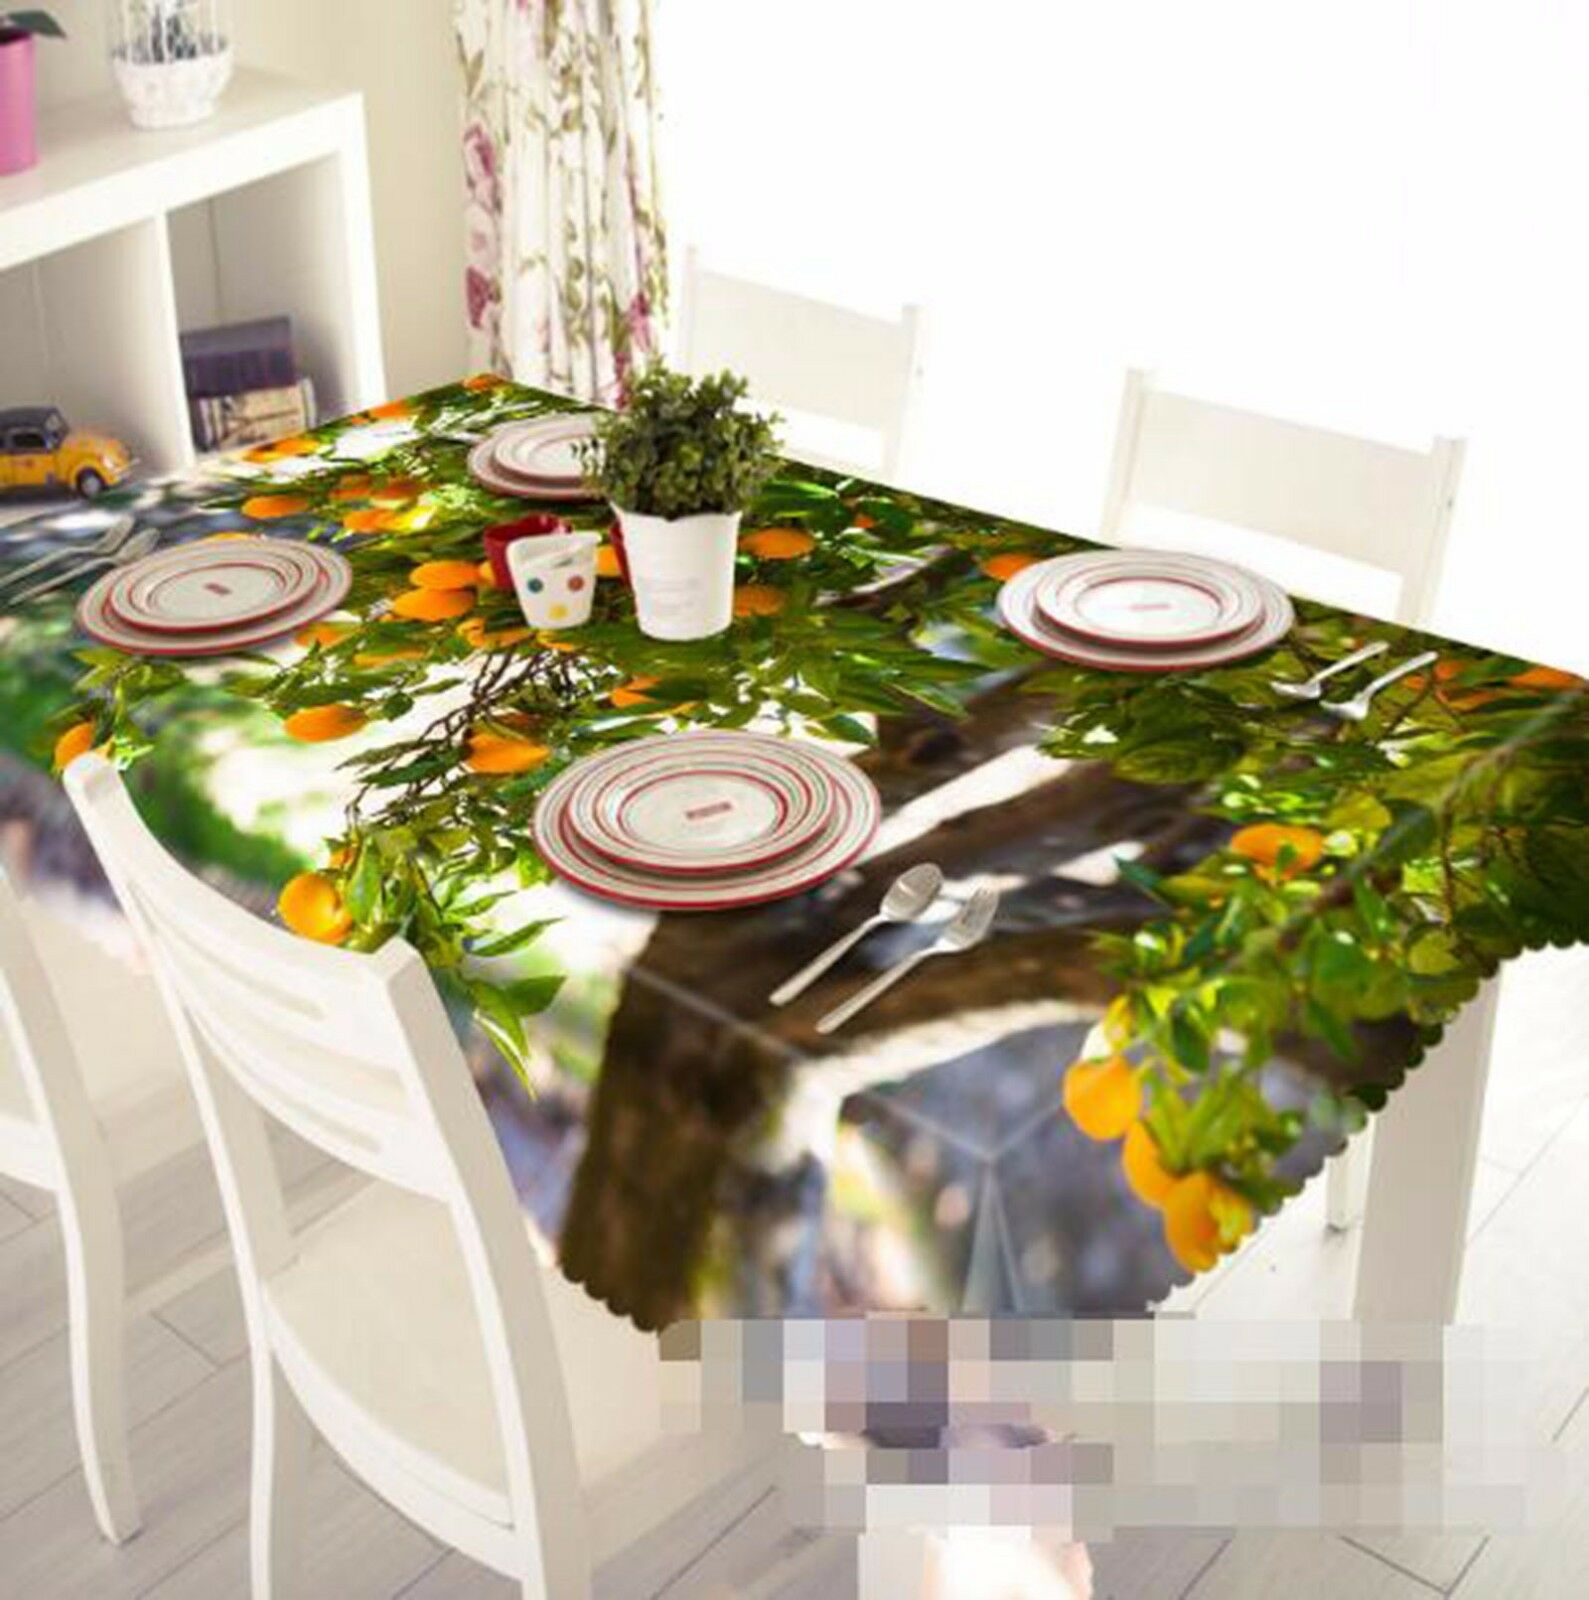 3D Arbre fruitier Nappe Table Cover Cloth fête d'anniversaire AJ papier peint Royaume-Uni Citron